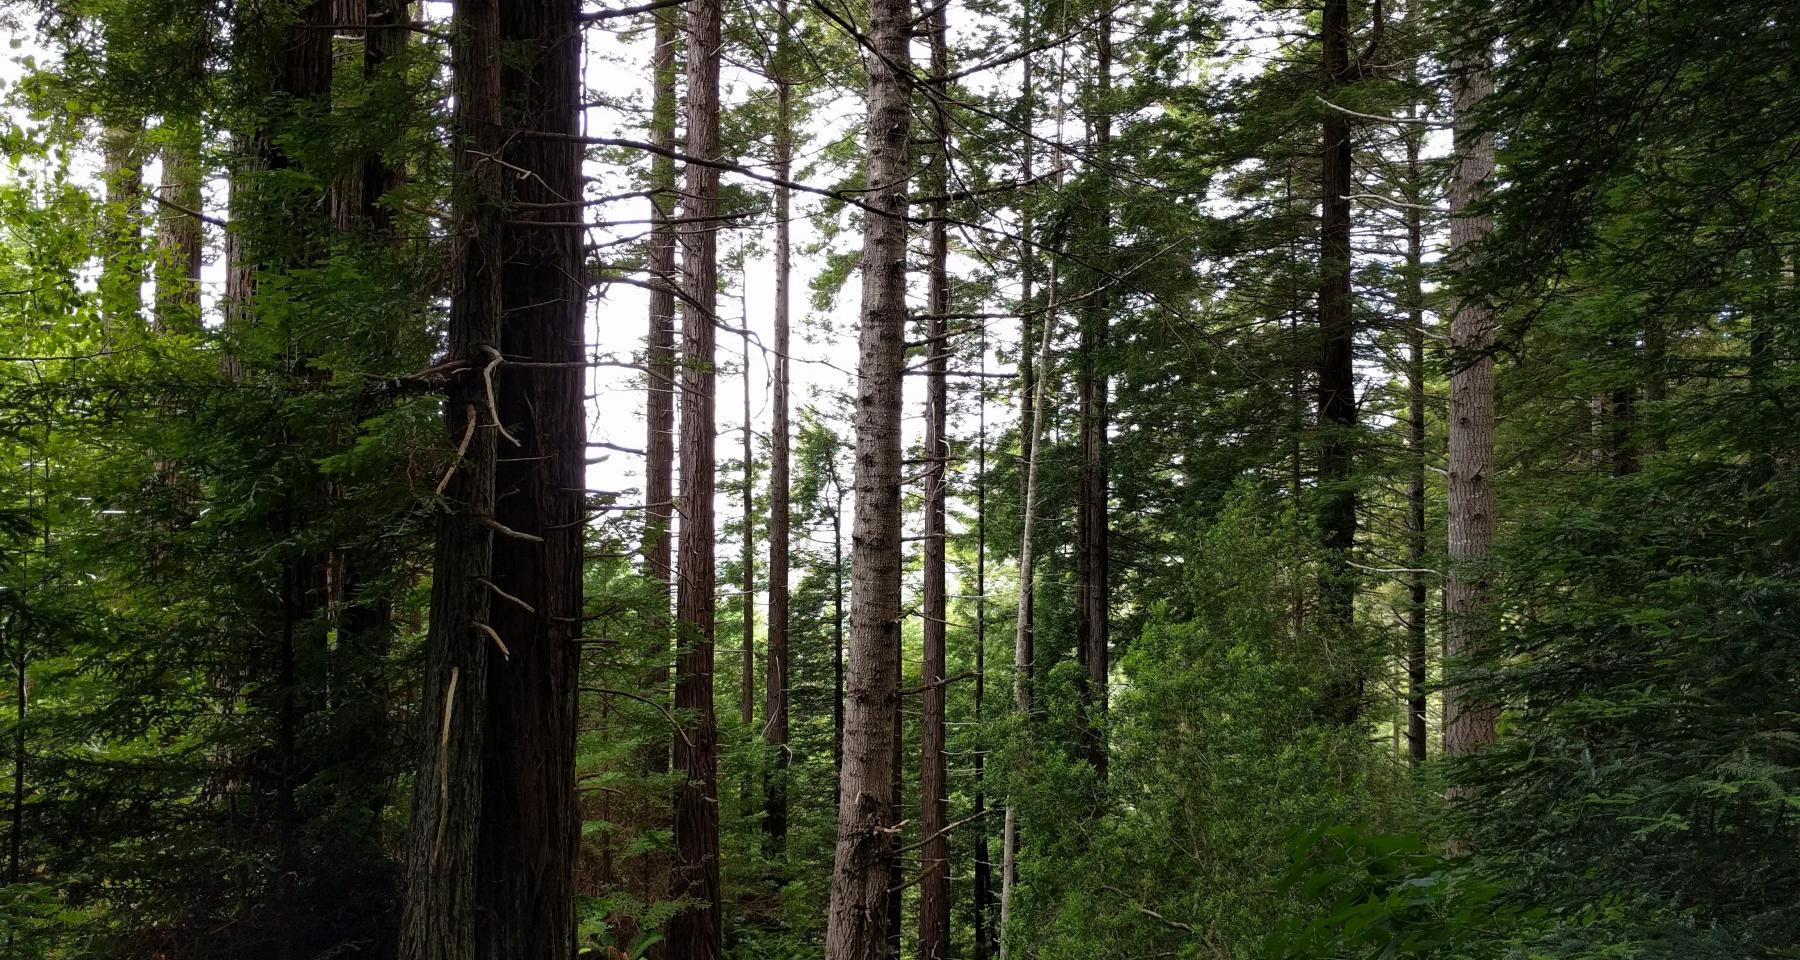 Coastal foggy forest of redwood, Douglas-fir, and grand fir